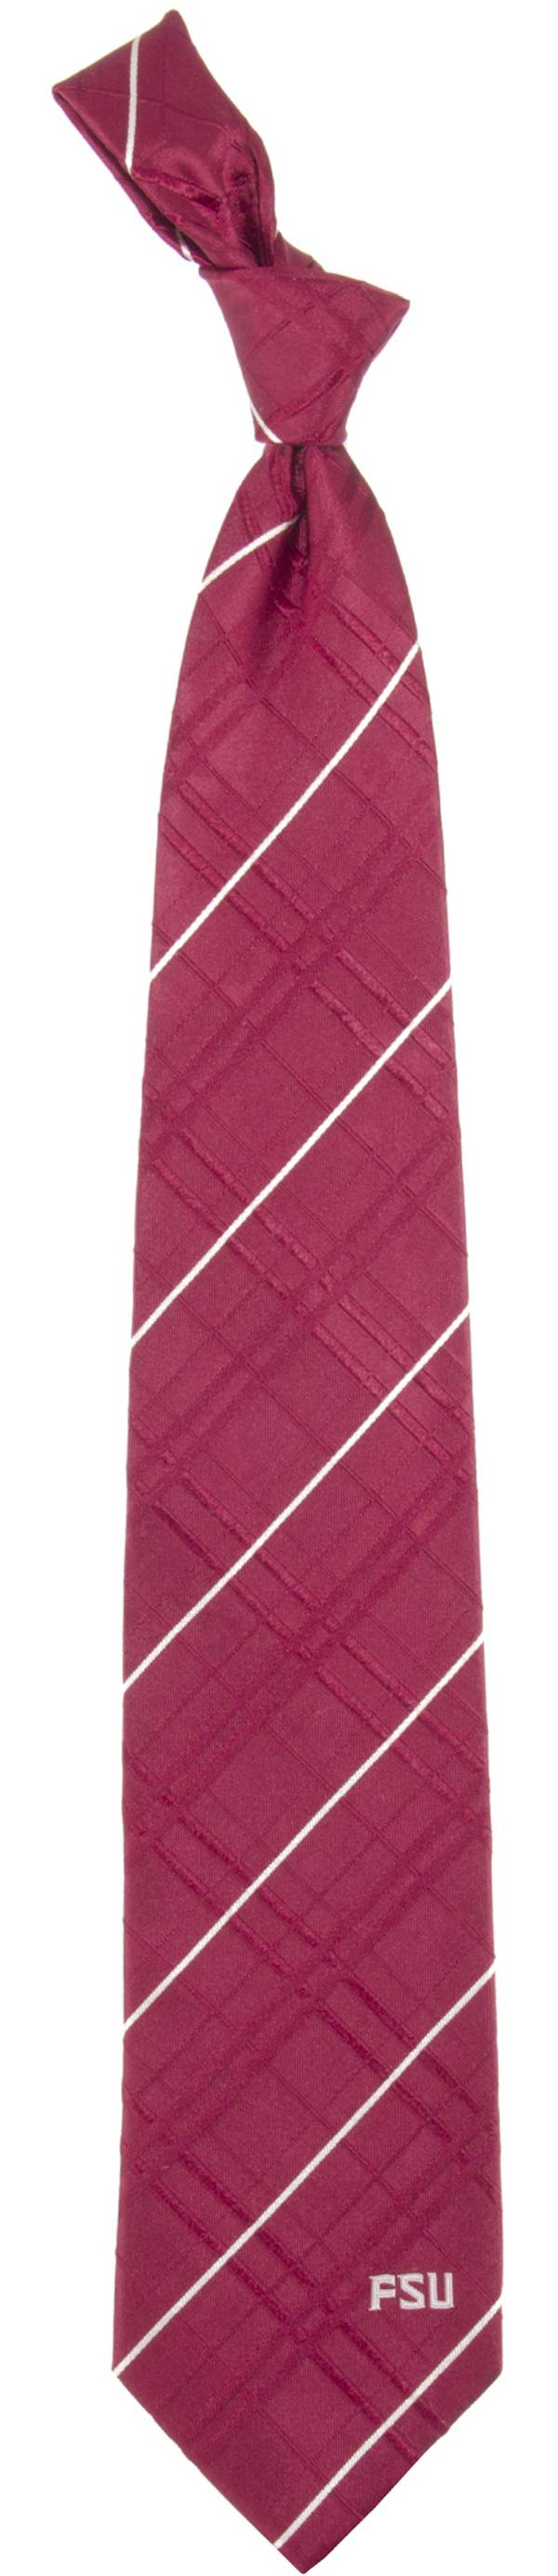 Eagles Wings Florida State Seminoles Woven Oxford Necktie product image